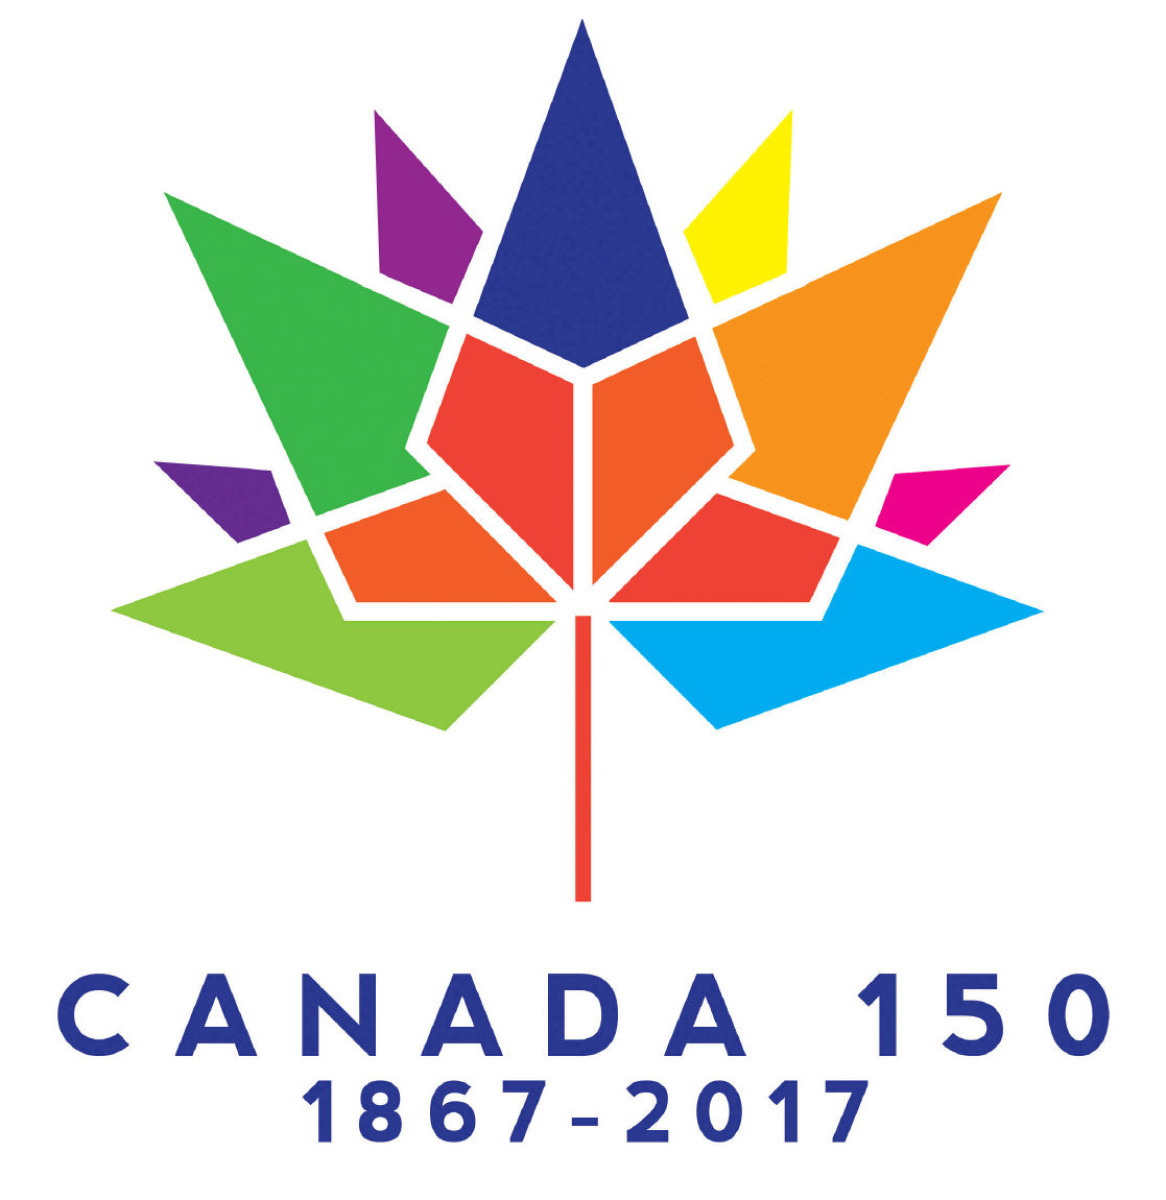 Canada 150 Logo designed by University of Waterloo student Ariana Cuvin circa April 2015 Google image from https://www.thestar.com/news/canada/2015/04/28/controversial-canada-150-logo-design-contest-won-by-university-of-waterloo-student.html